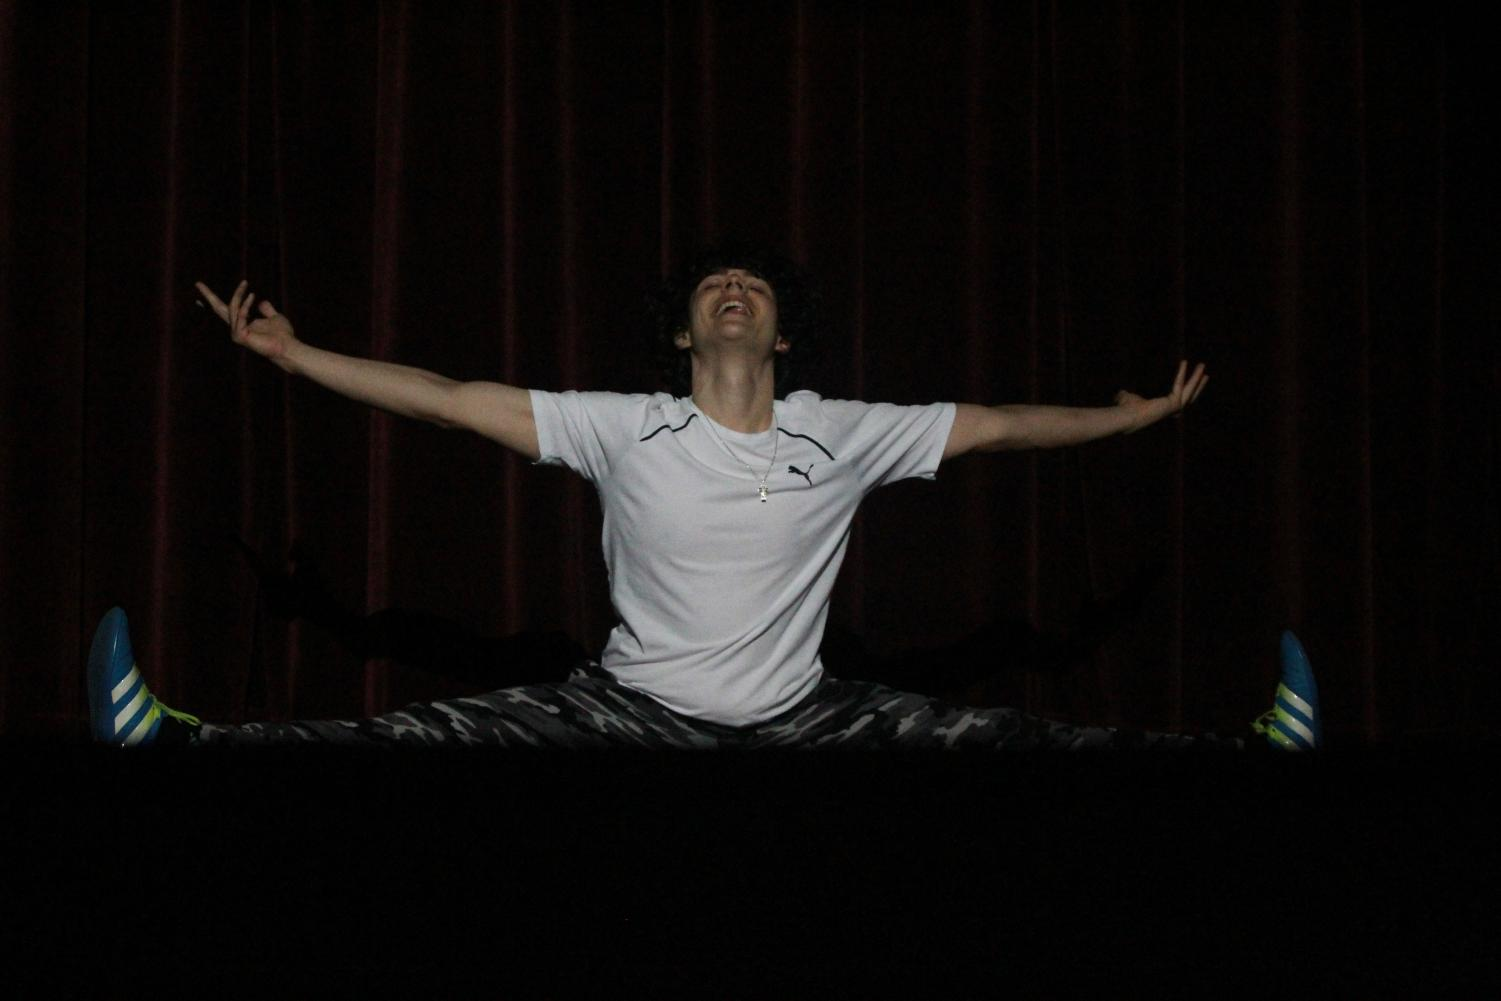 Senior+and+contestant+Phillip+Kostin+does+the+splits+after+his+motivational+speech-turned+rap+during+the+talent+portion+of+the+Mr.+Watkins+Mill+contest.+